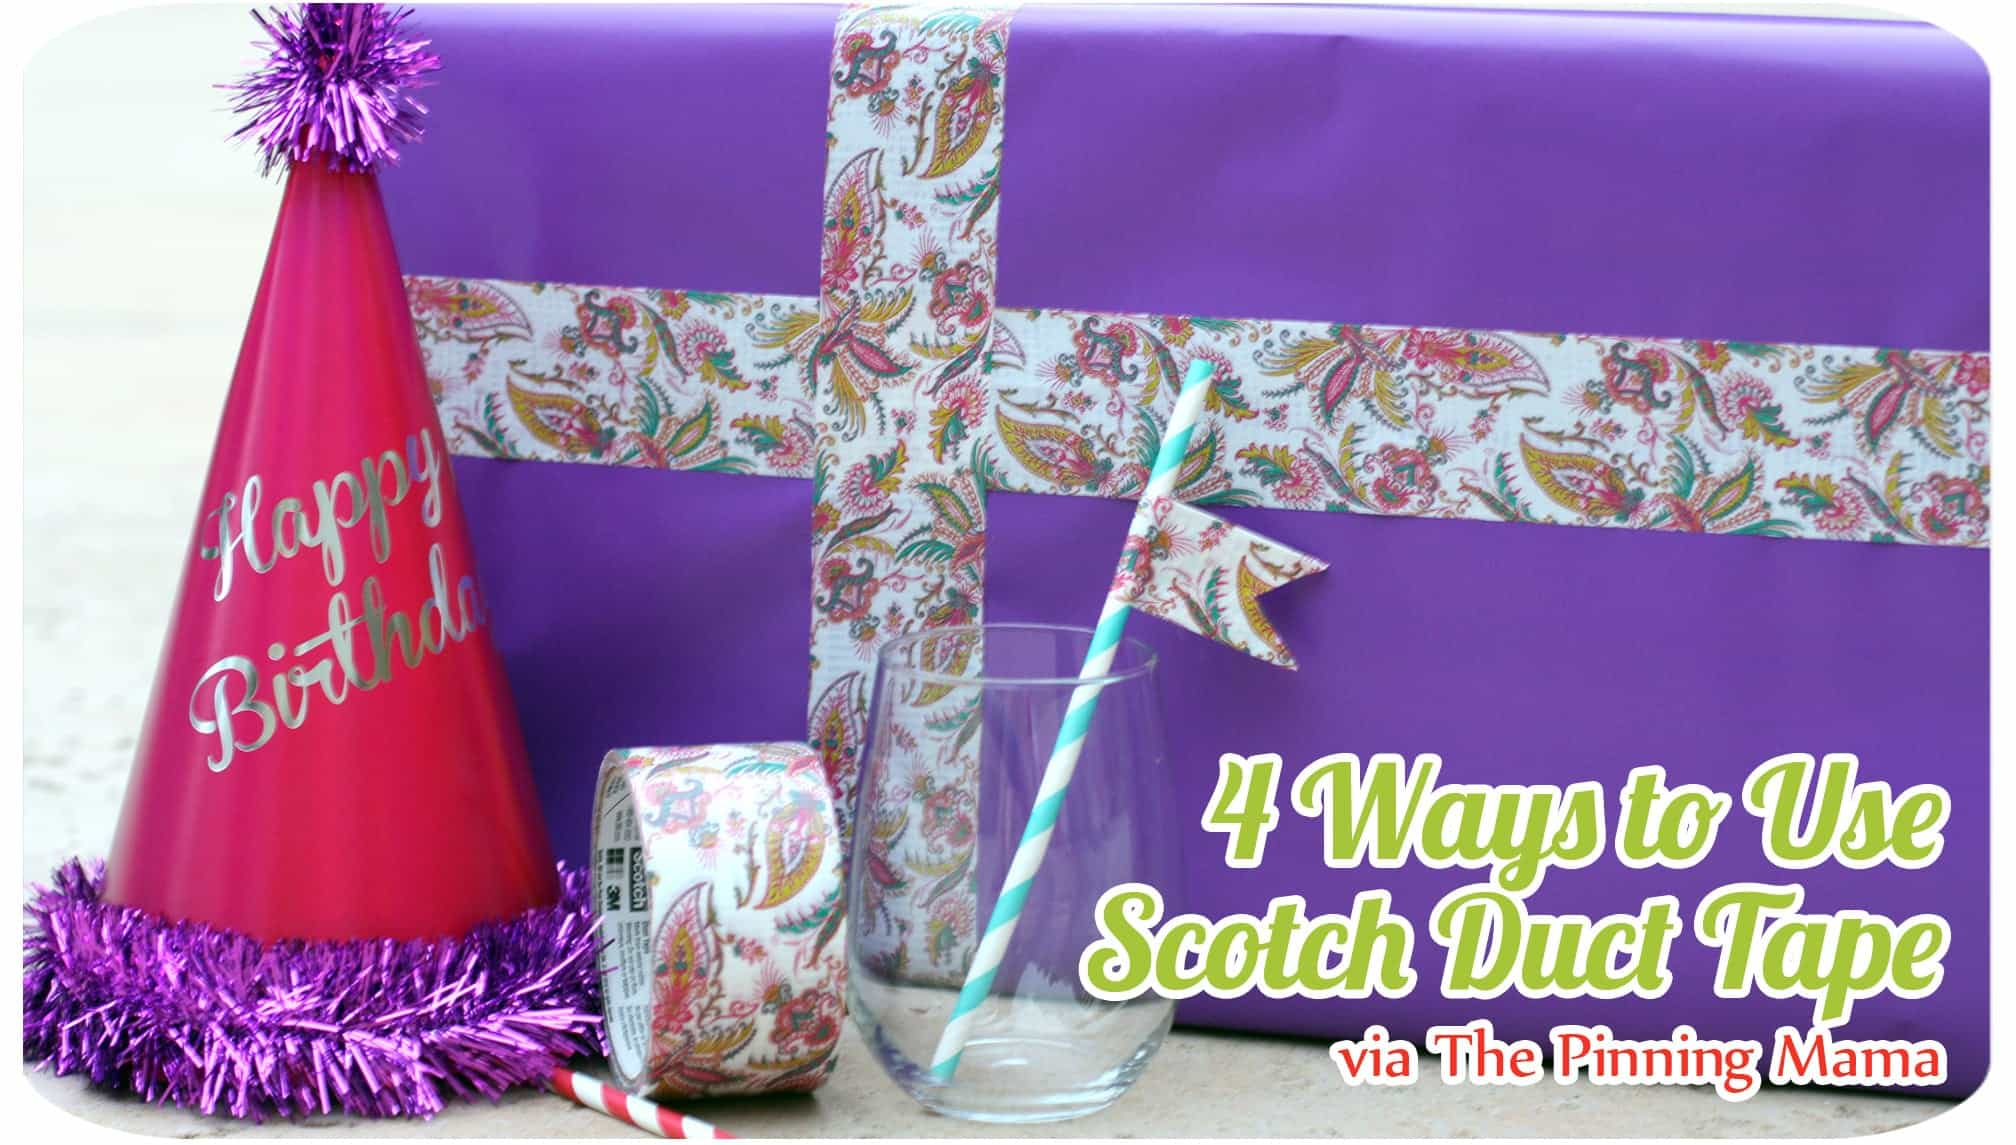 scotch duct tape projects www.thepinningmama.com